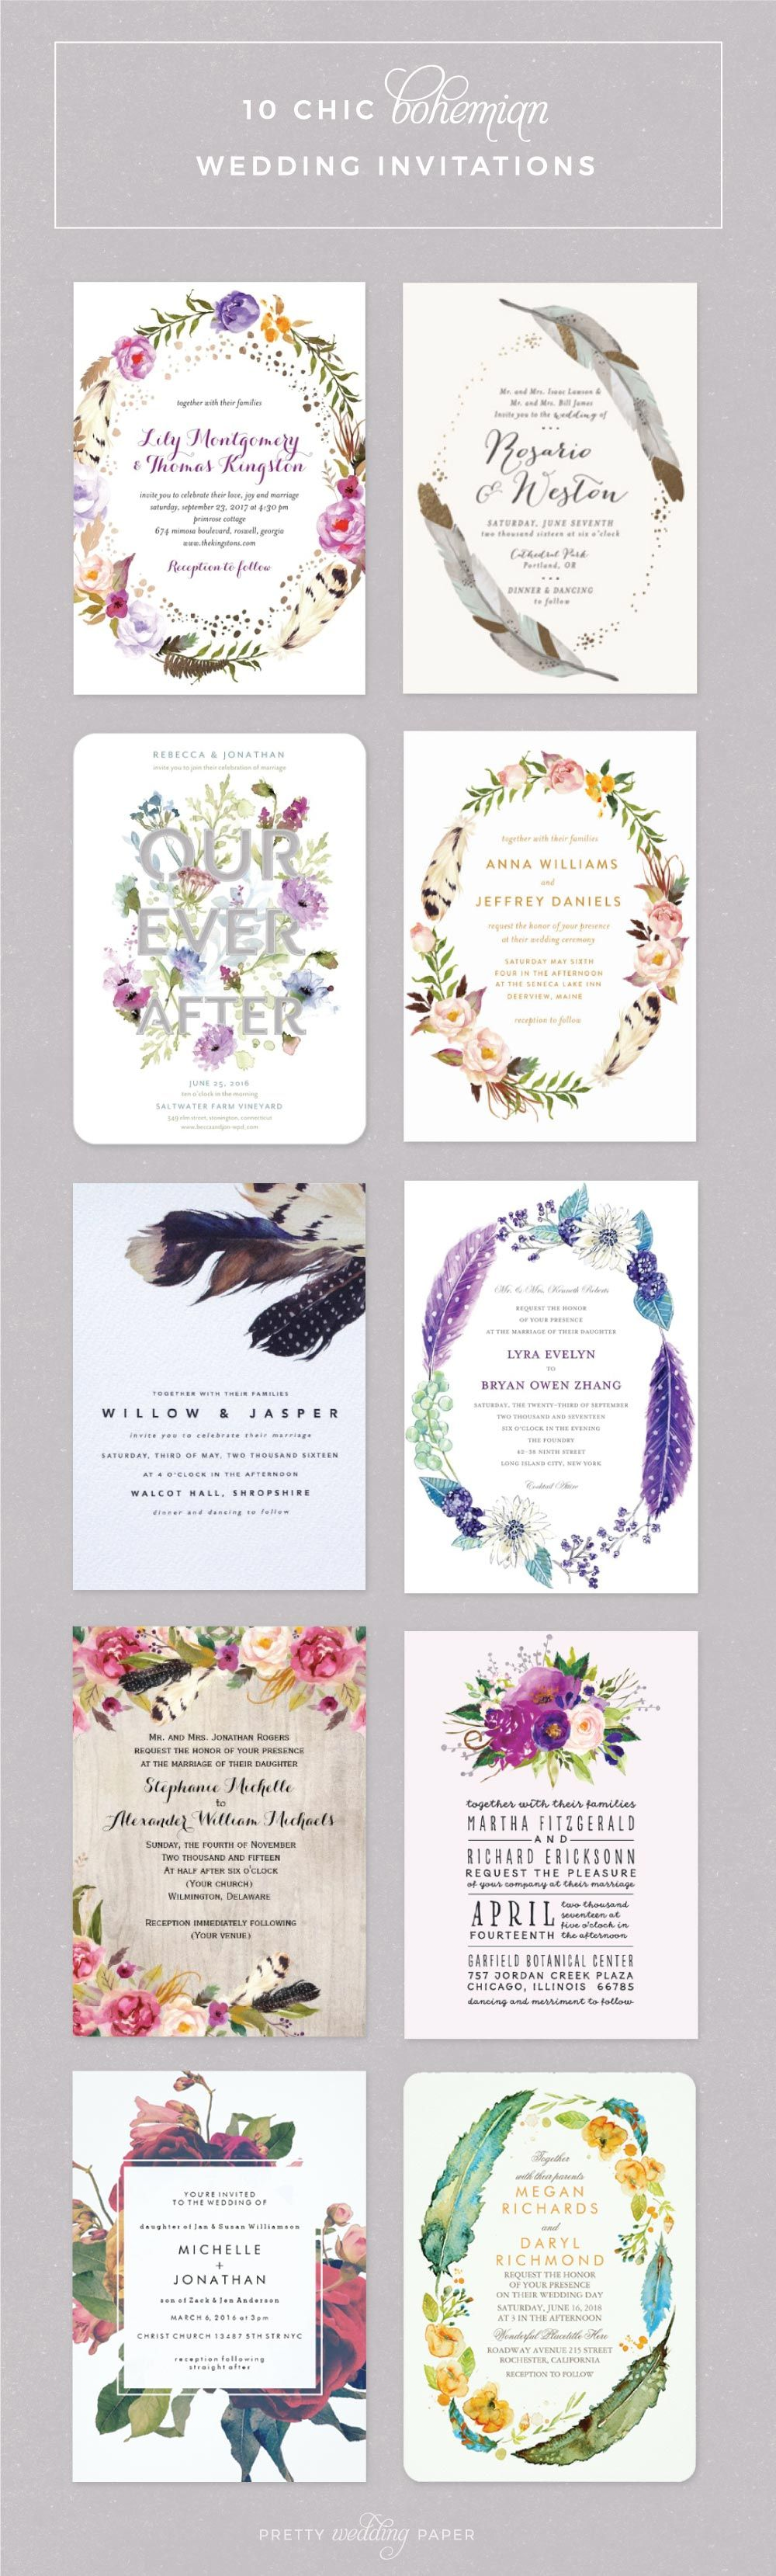 Top 10 Boho Wedding Invitations: Pretty Florals + Feathers ...